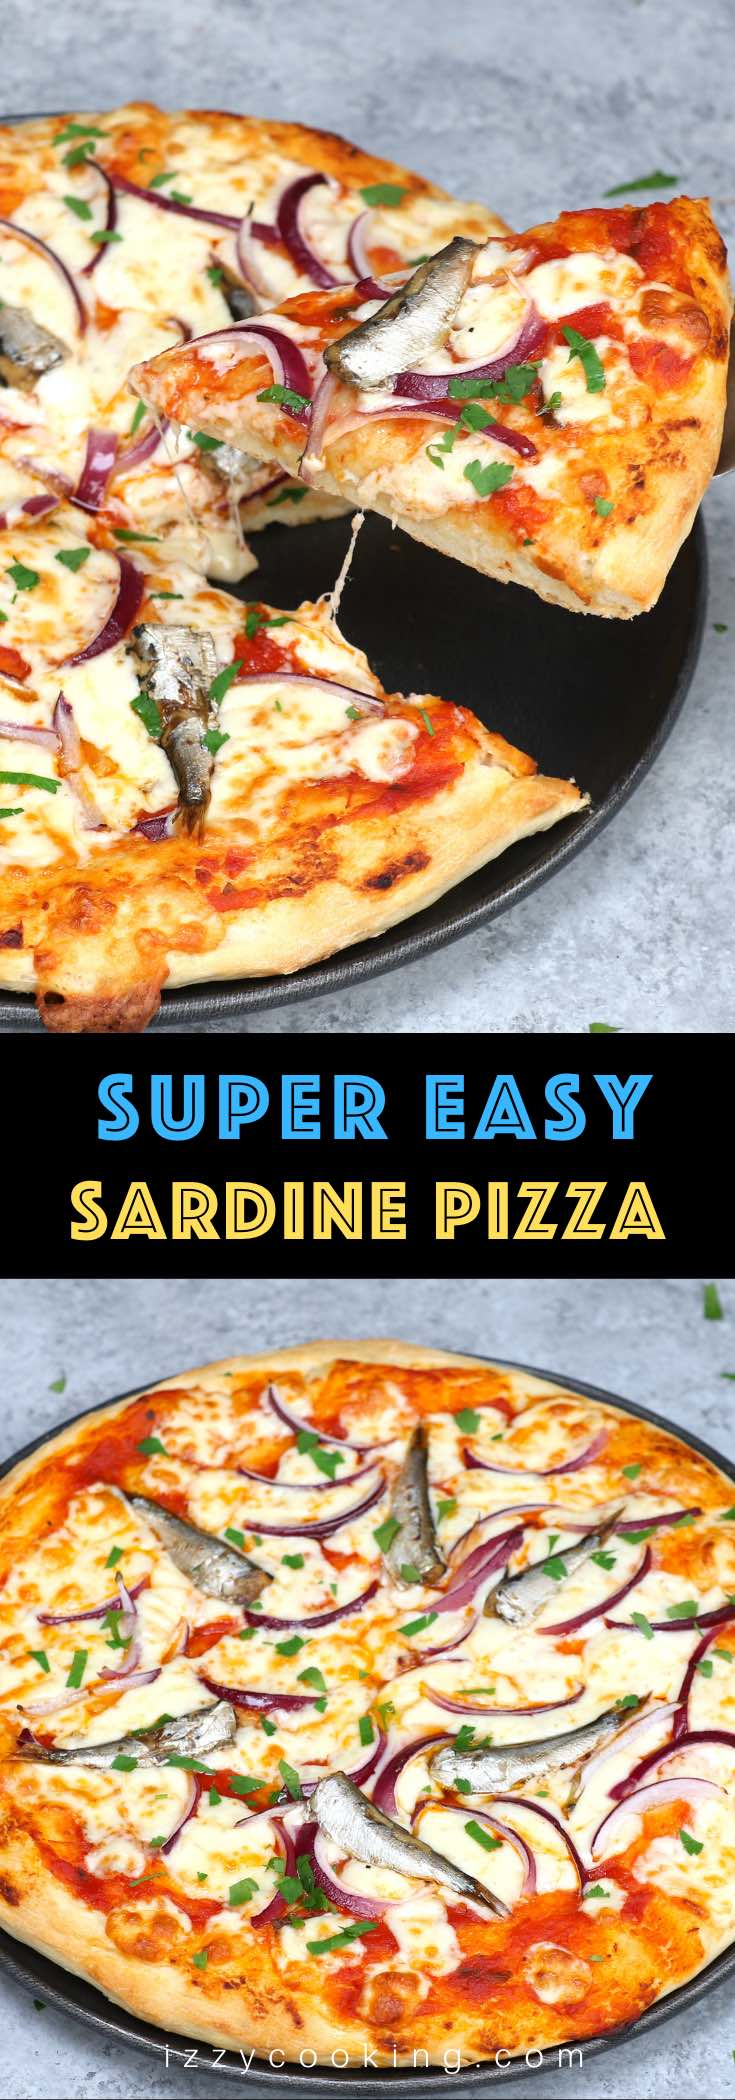 Sardine Pizza is my go-to meal when I have canned sardines and onions on hand. This classic Italian recipe is really easy and delicious. You'll want to make this homemade pizza over and over again! #SardinePizza